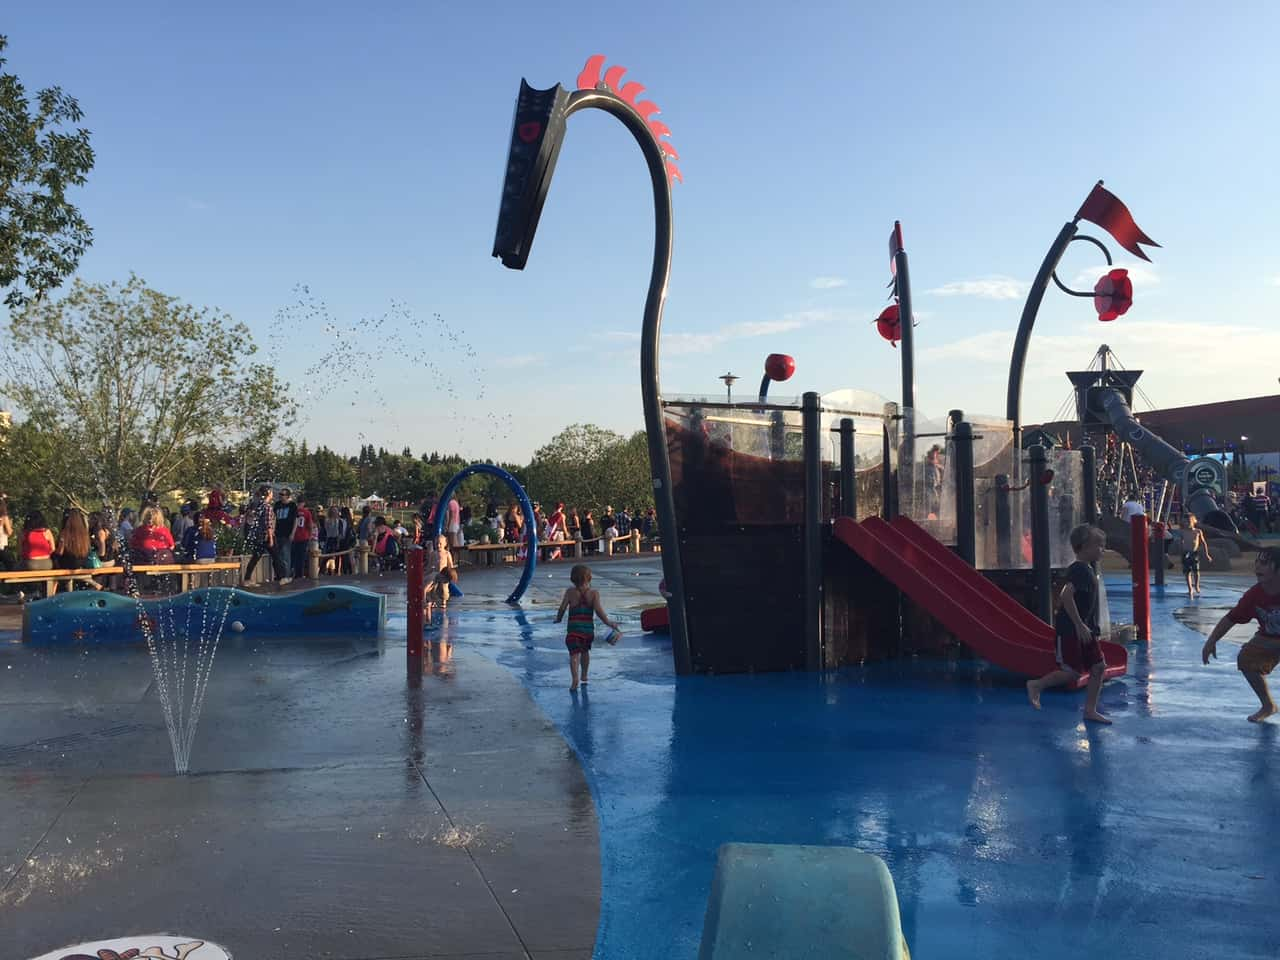 Broadmoor Lake RE/MAX Spray Park and Playground